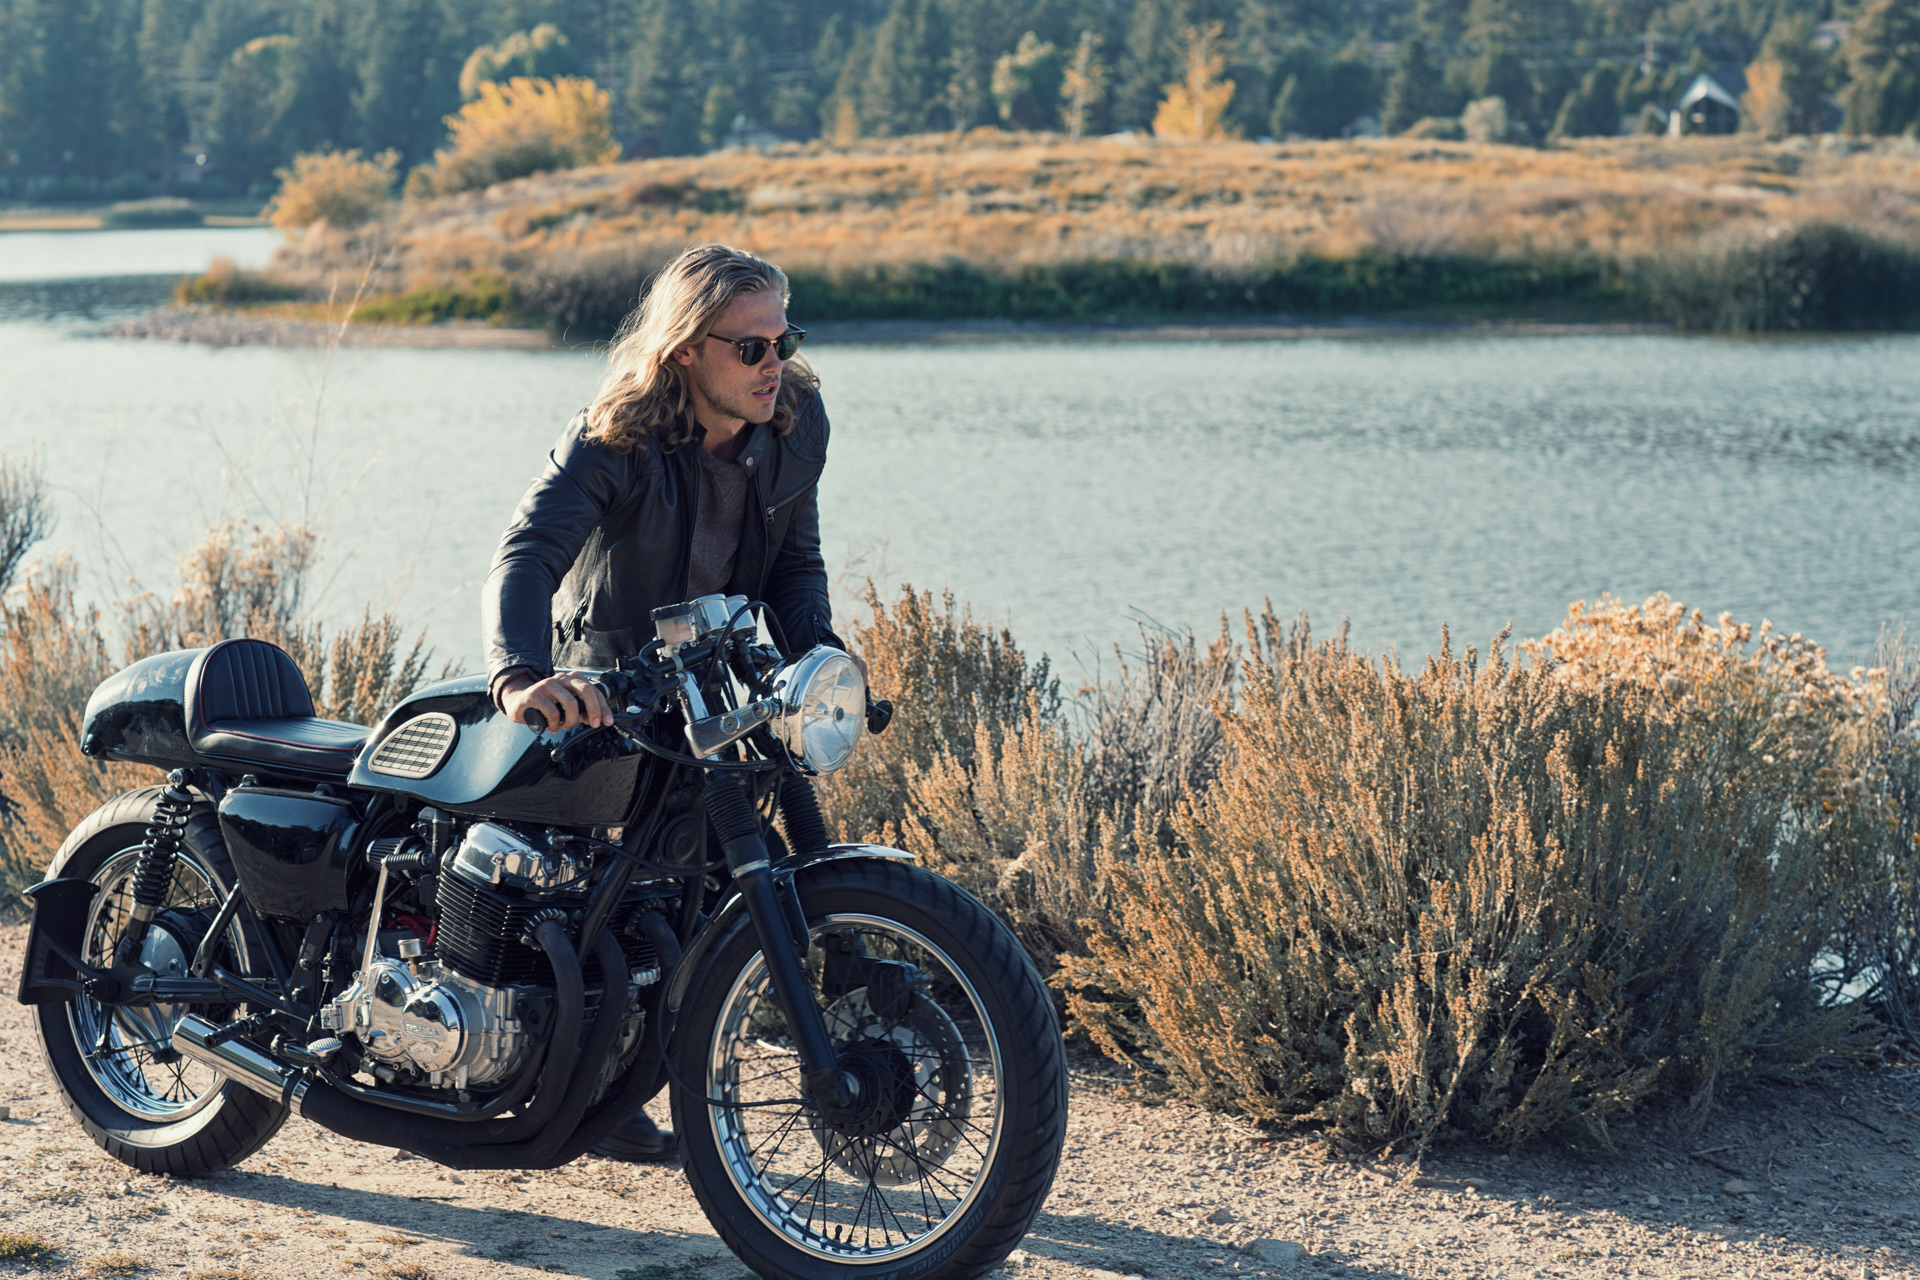 Mark DeLong - Lifestyle Photography - Model with long blonde hair wearing sunglasses pushing a motorcycle along the bank of a lake